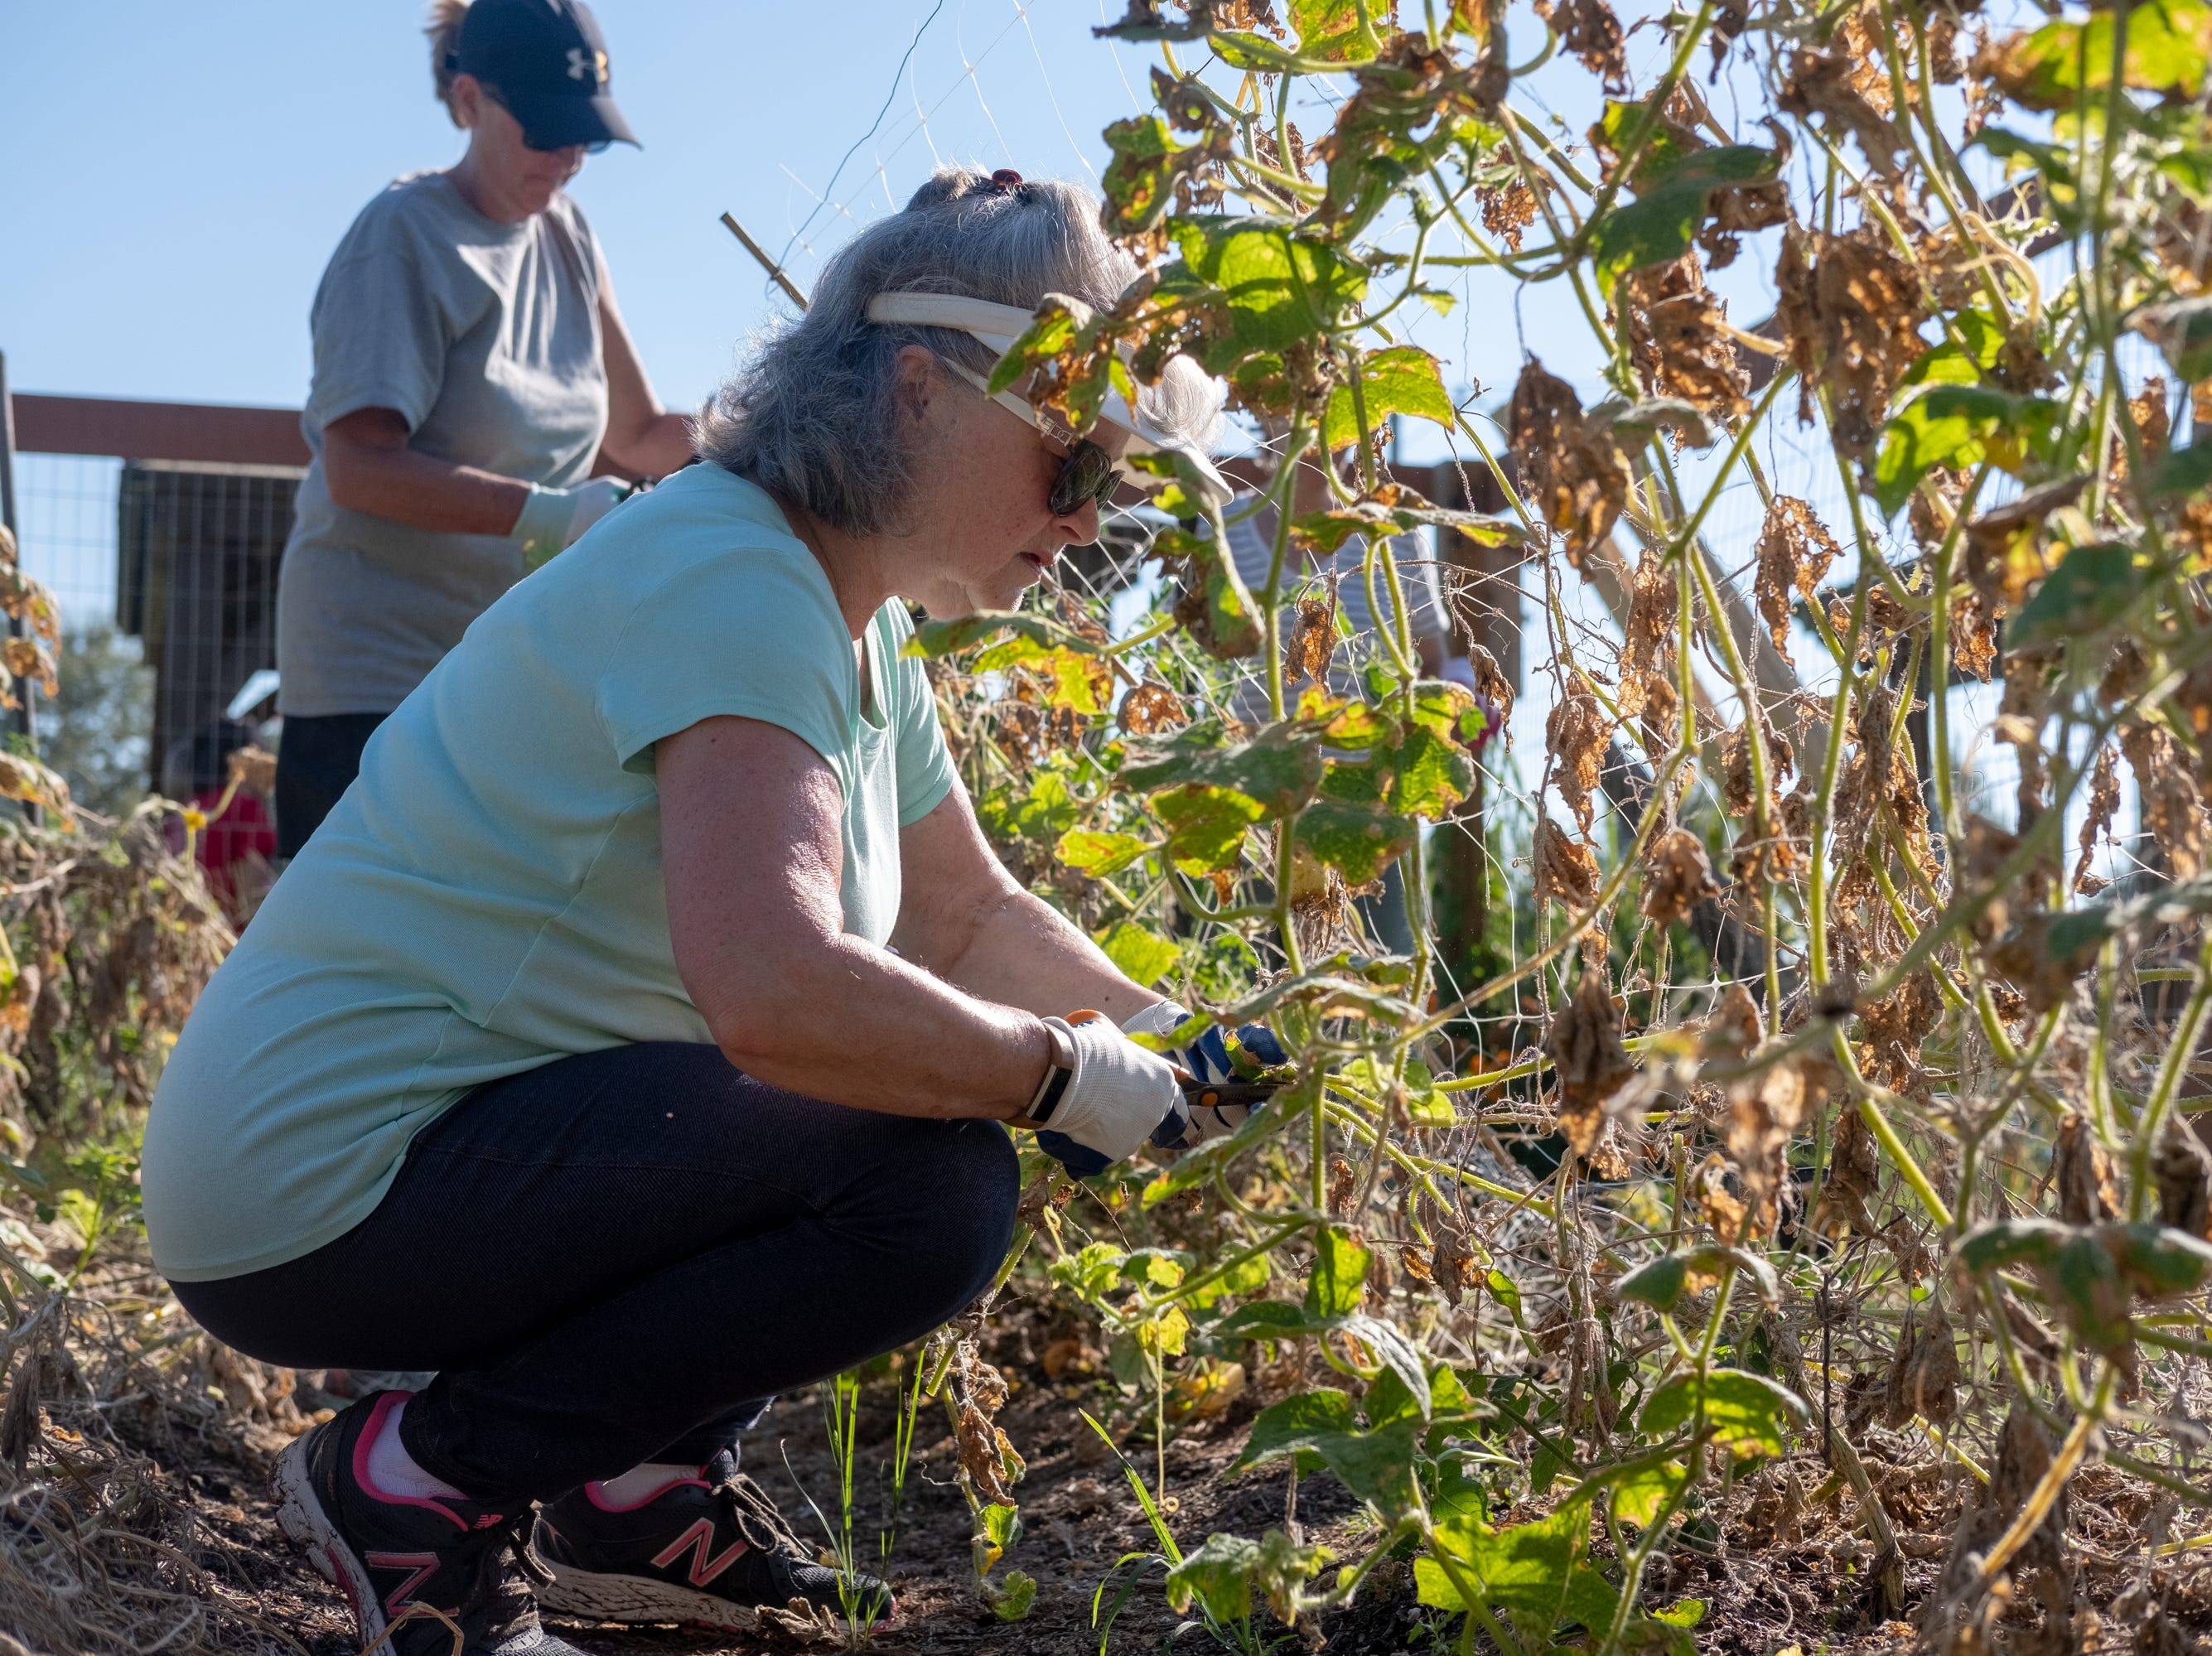 Barbara Jones clears out old cucumber plants at the Epiphany Community Garden in Collierville on Saturday, Sept. 15, 2018.